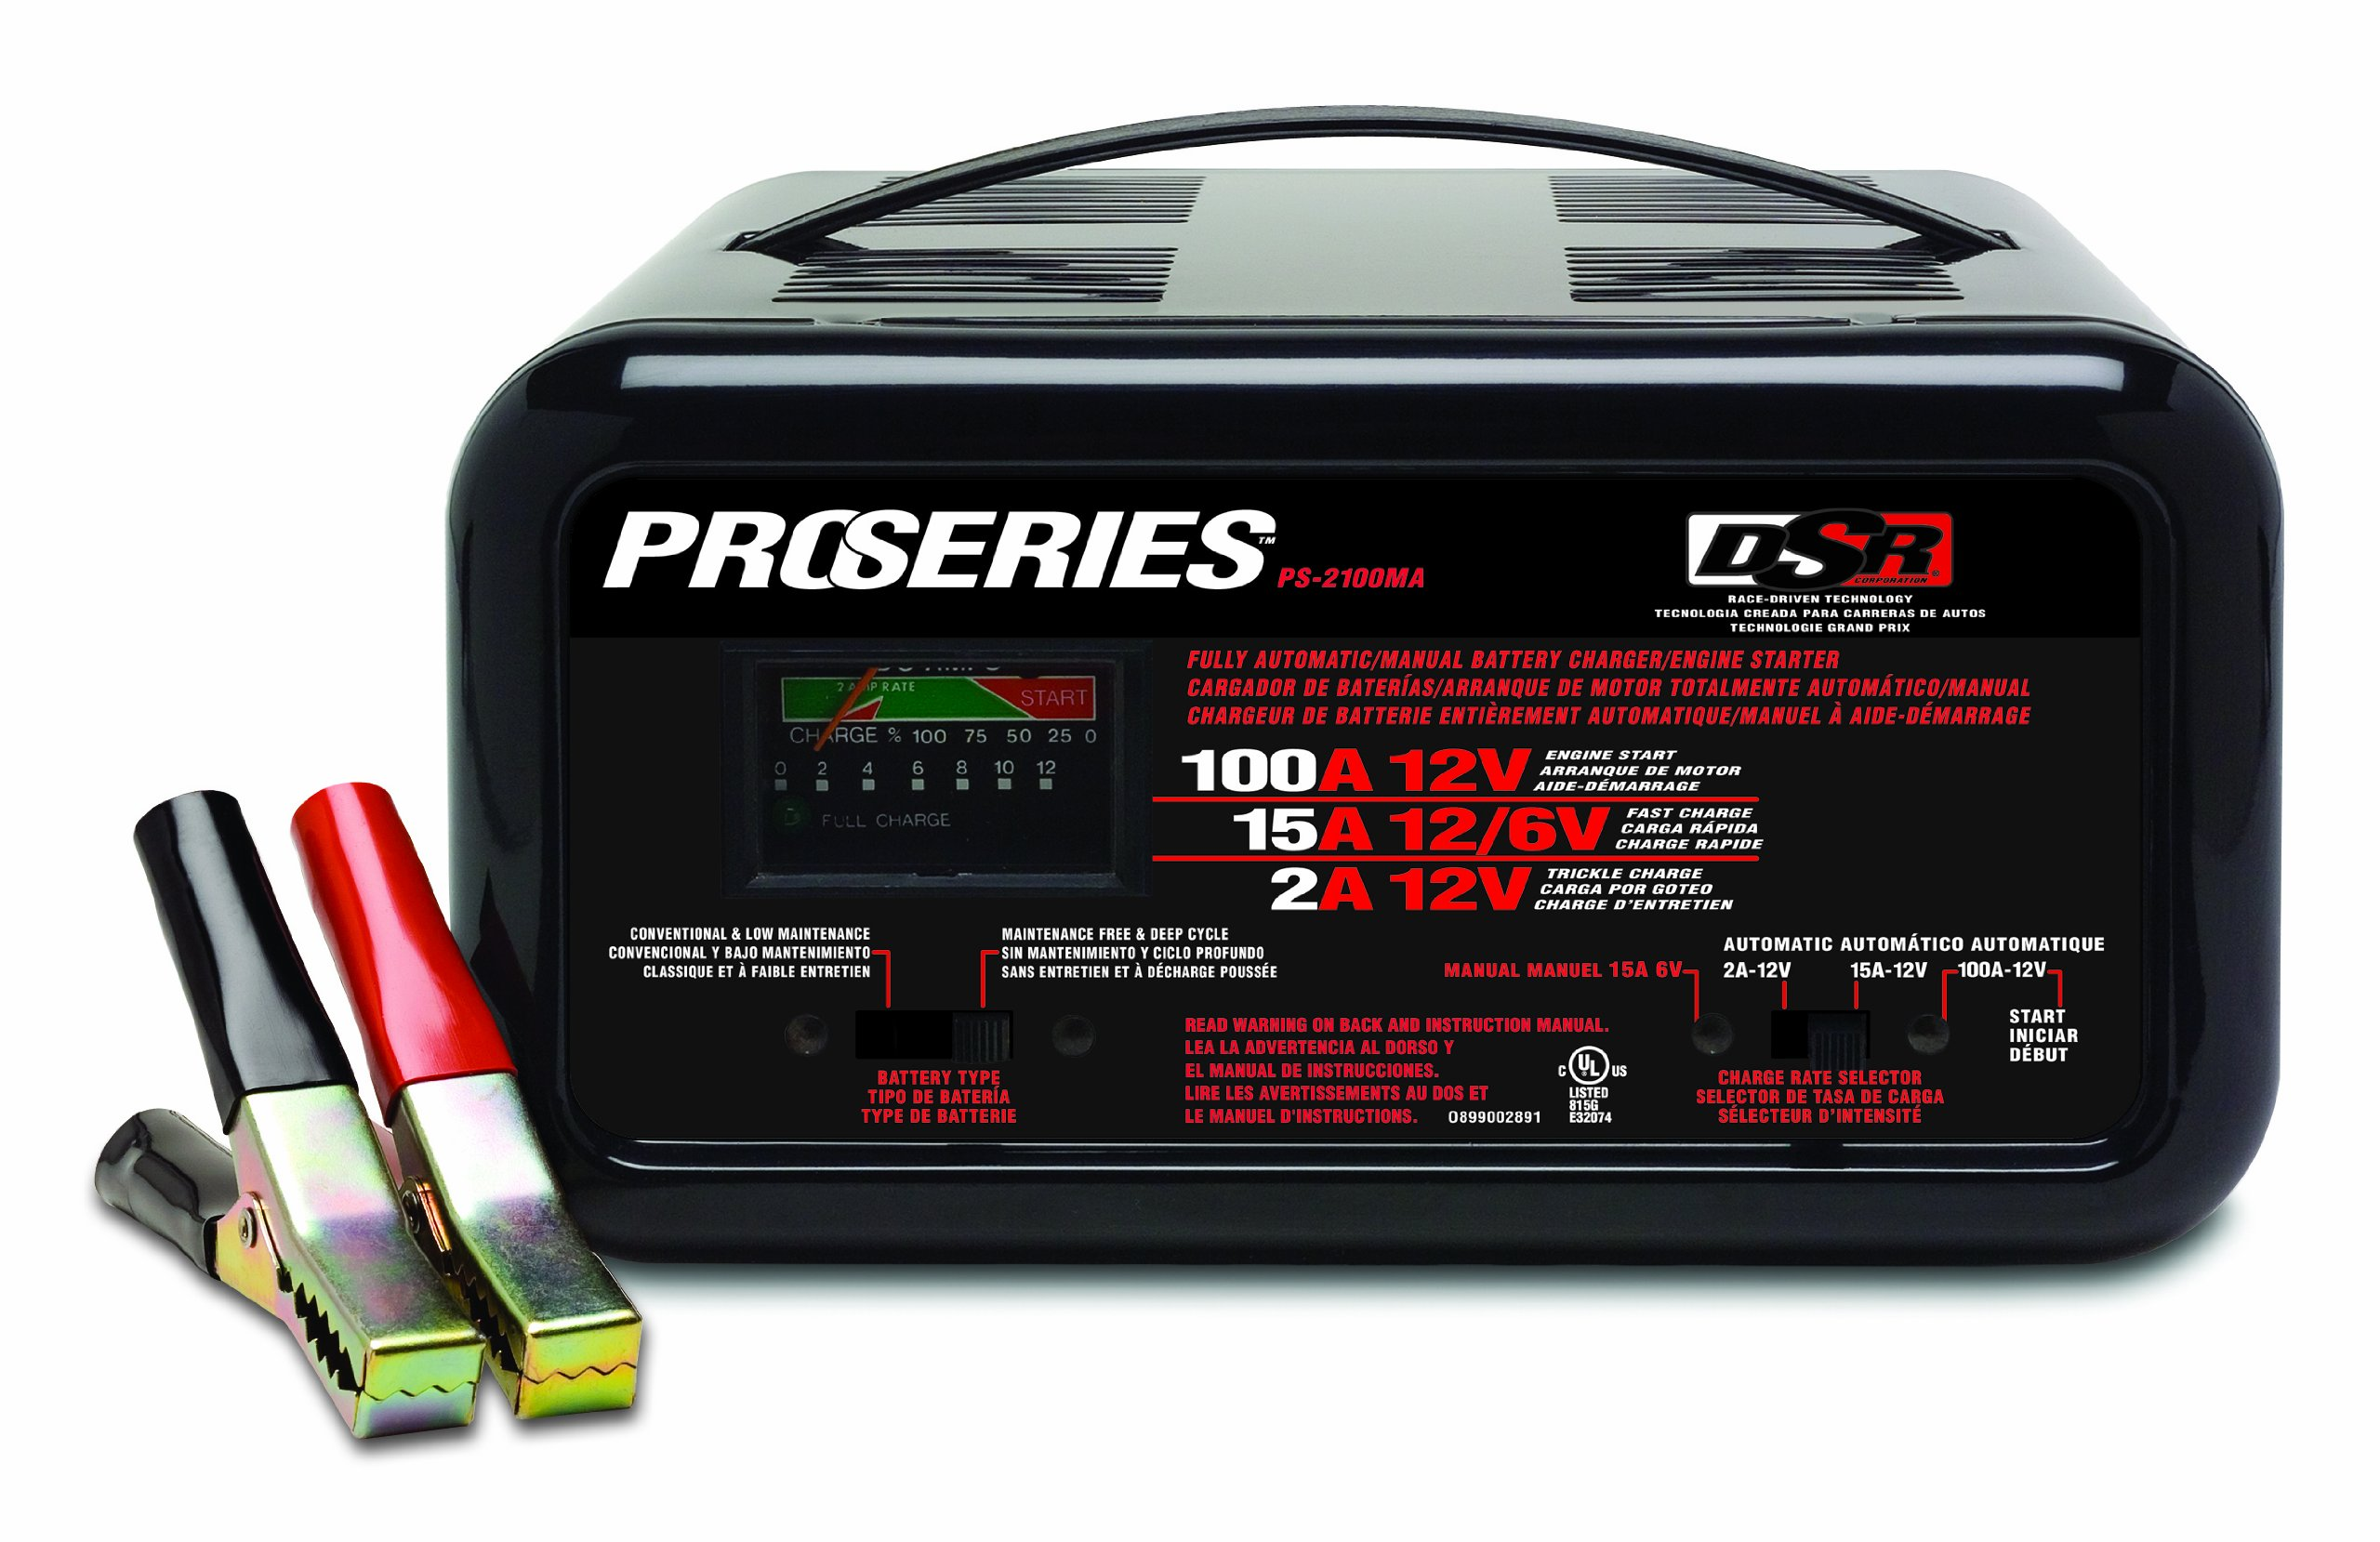 Schumacher PS-2100MA DSR ProSeries 2/15/100 Amp 6/12 Volt Automatic or Manual Bench Battery Charger/Starter